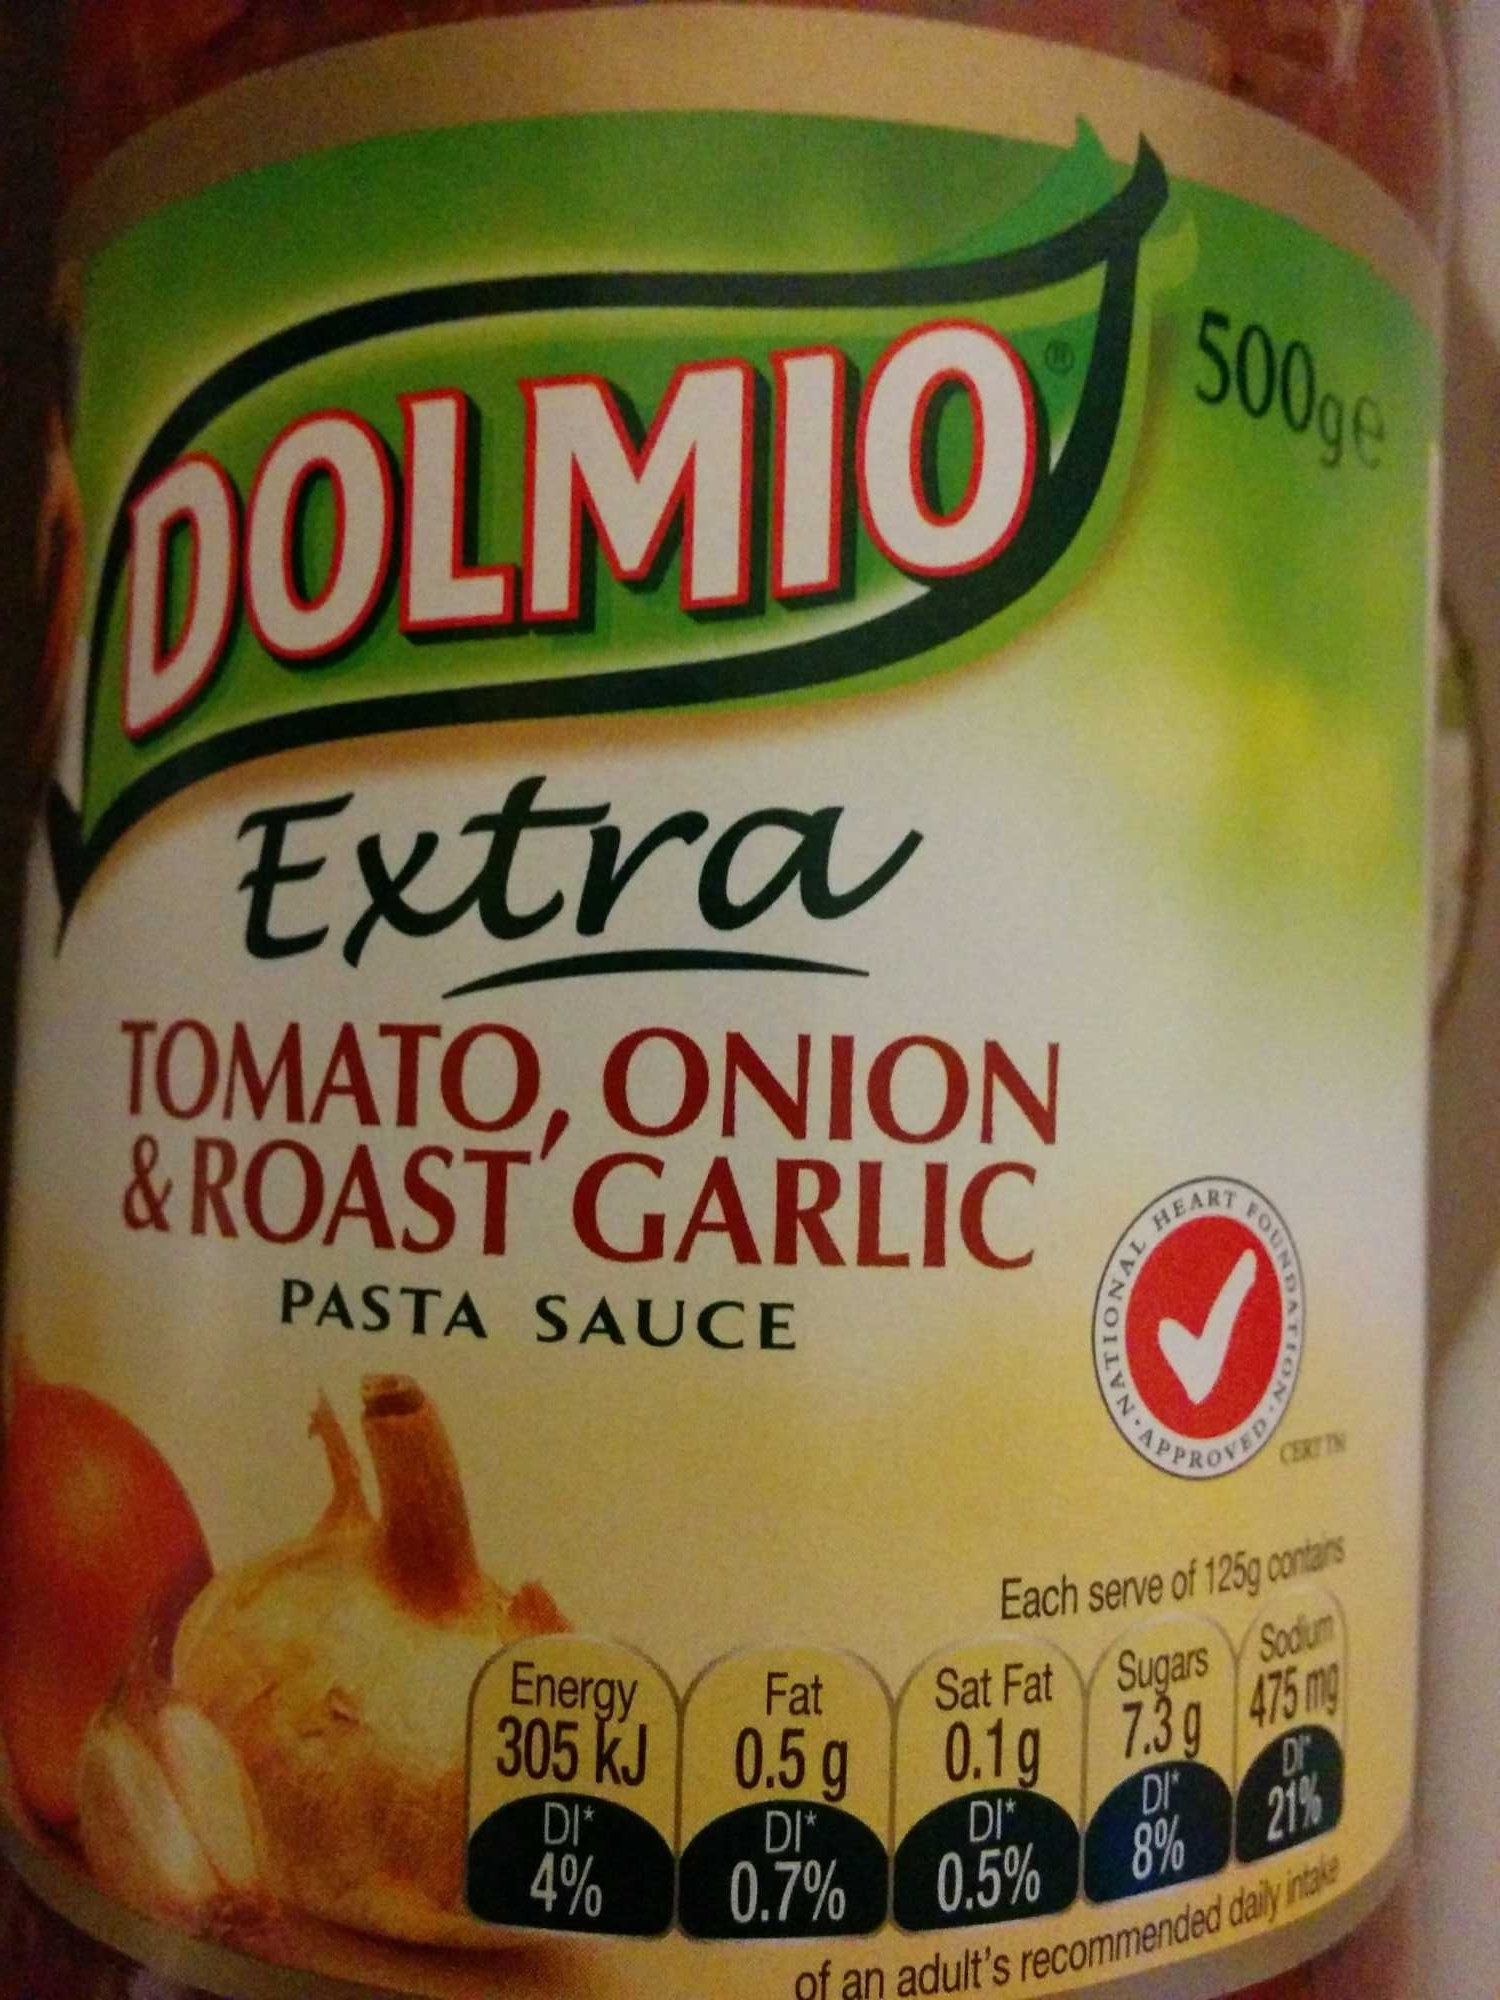 Tomato, onion and roast garlic Pasta Sauce - Dolmio - 500g